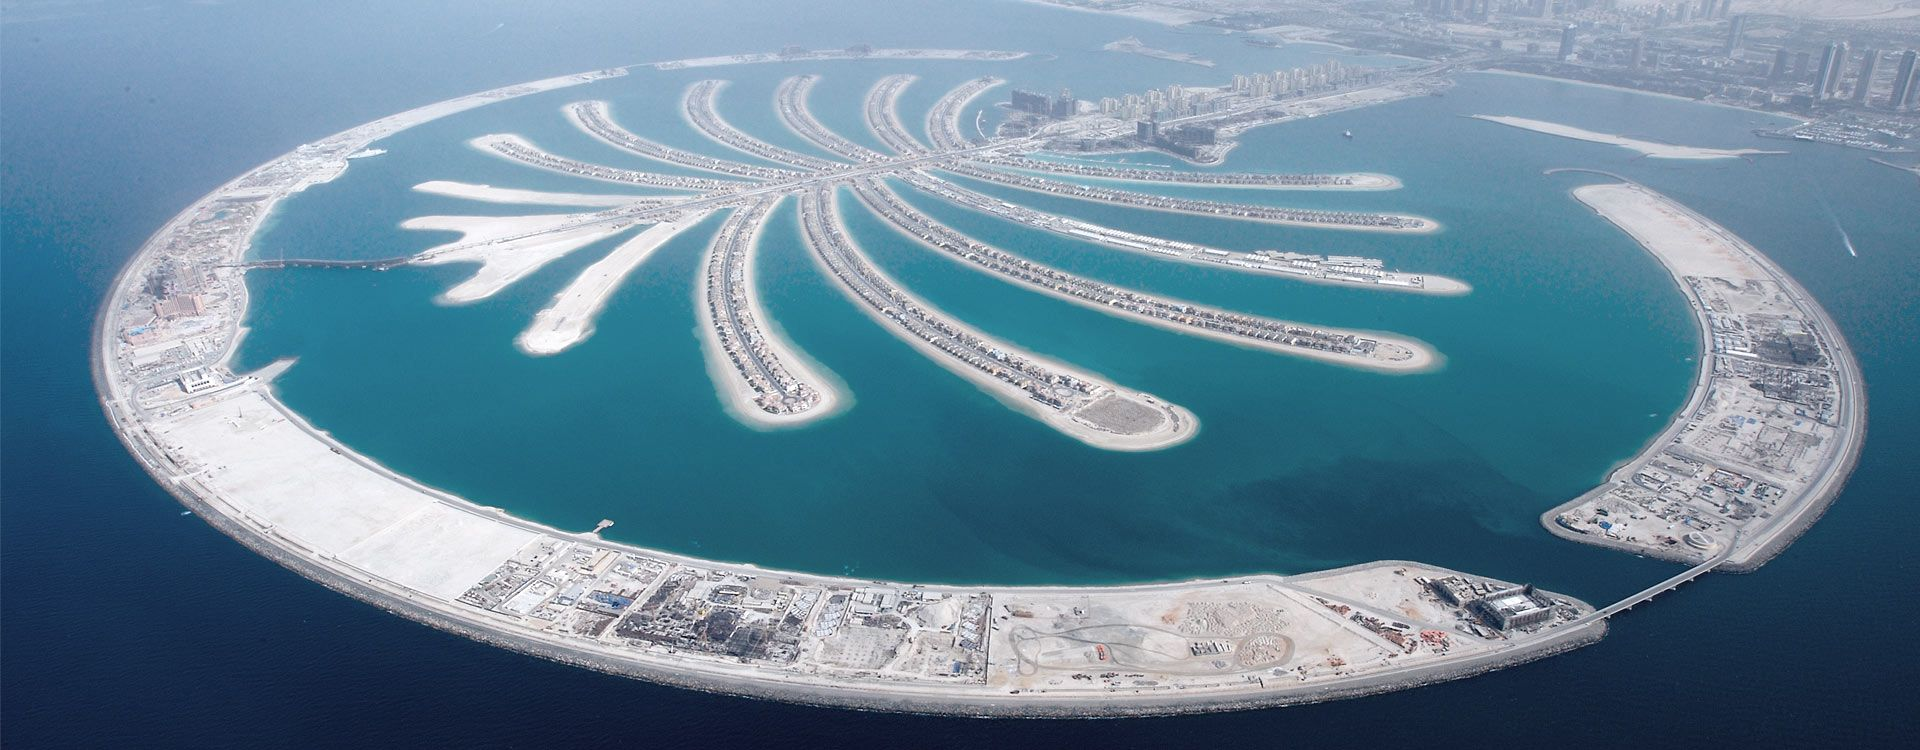 bnr-Palm-Jumeirah_Project-Delivery.jpg